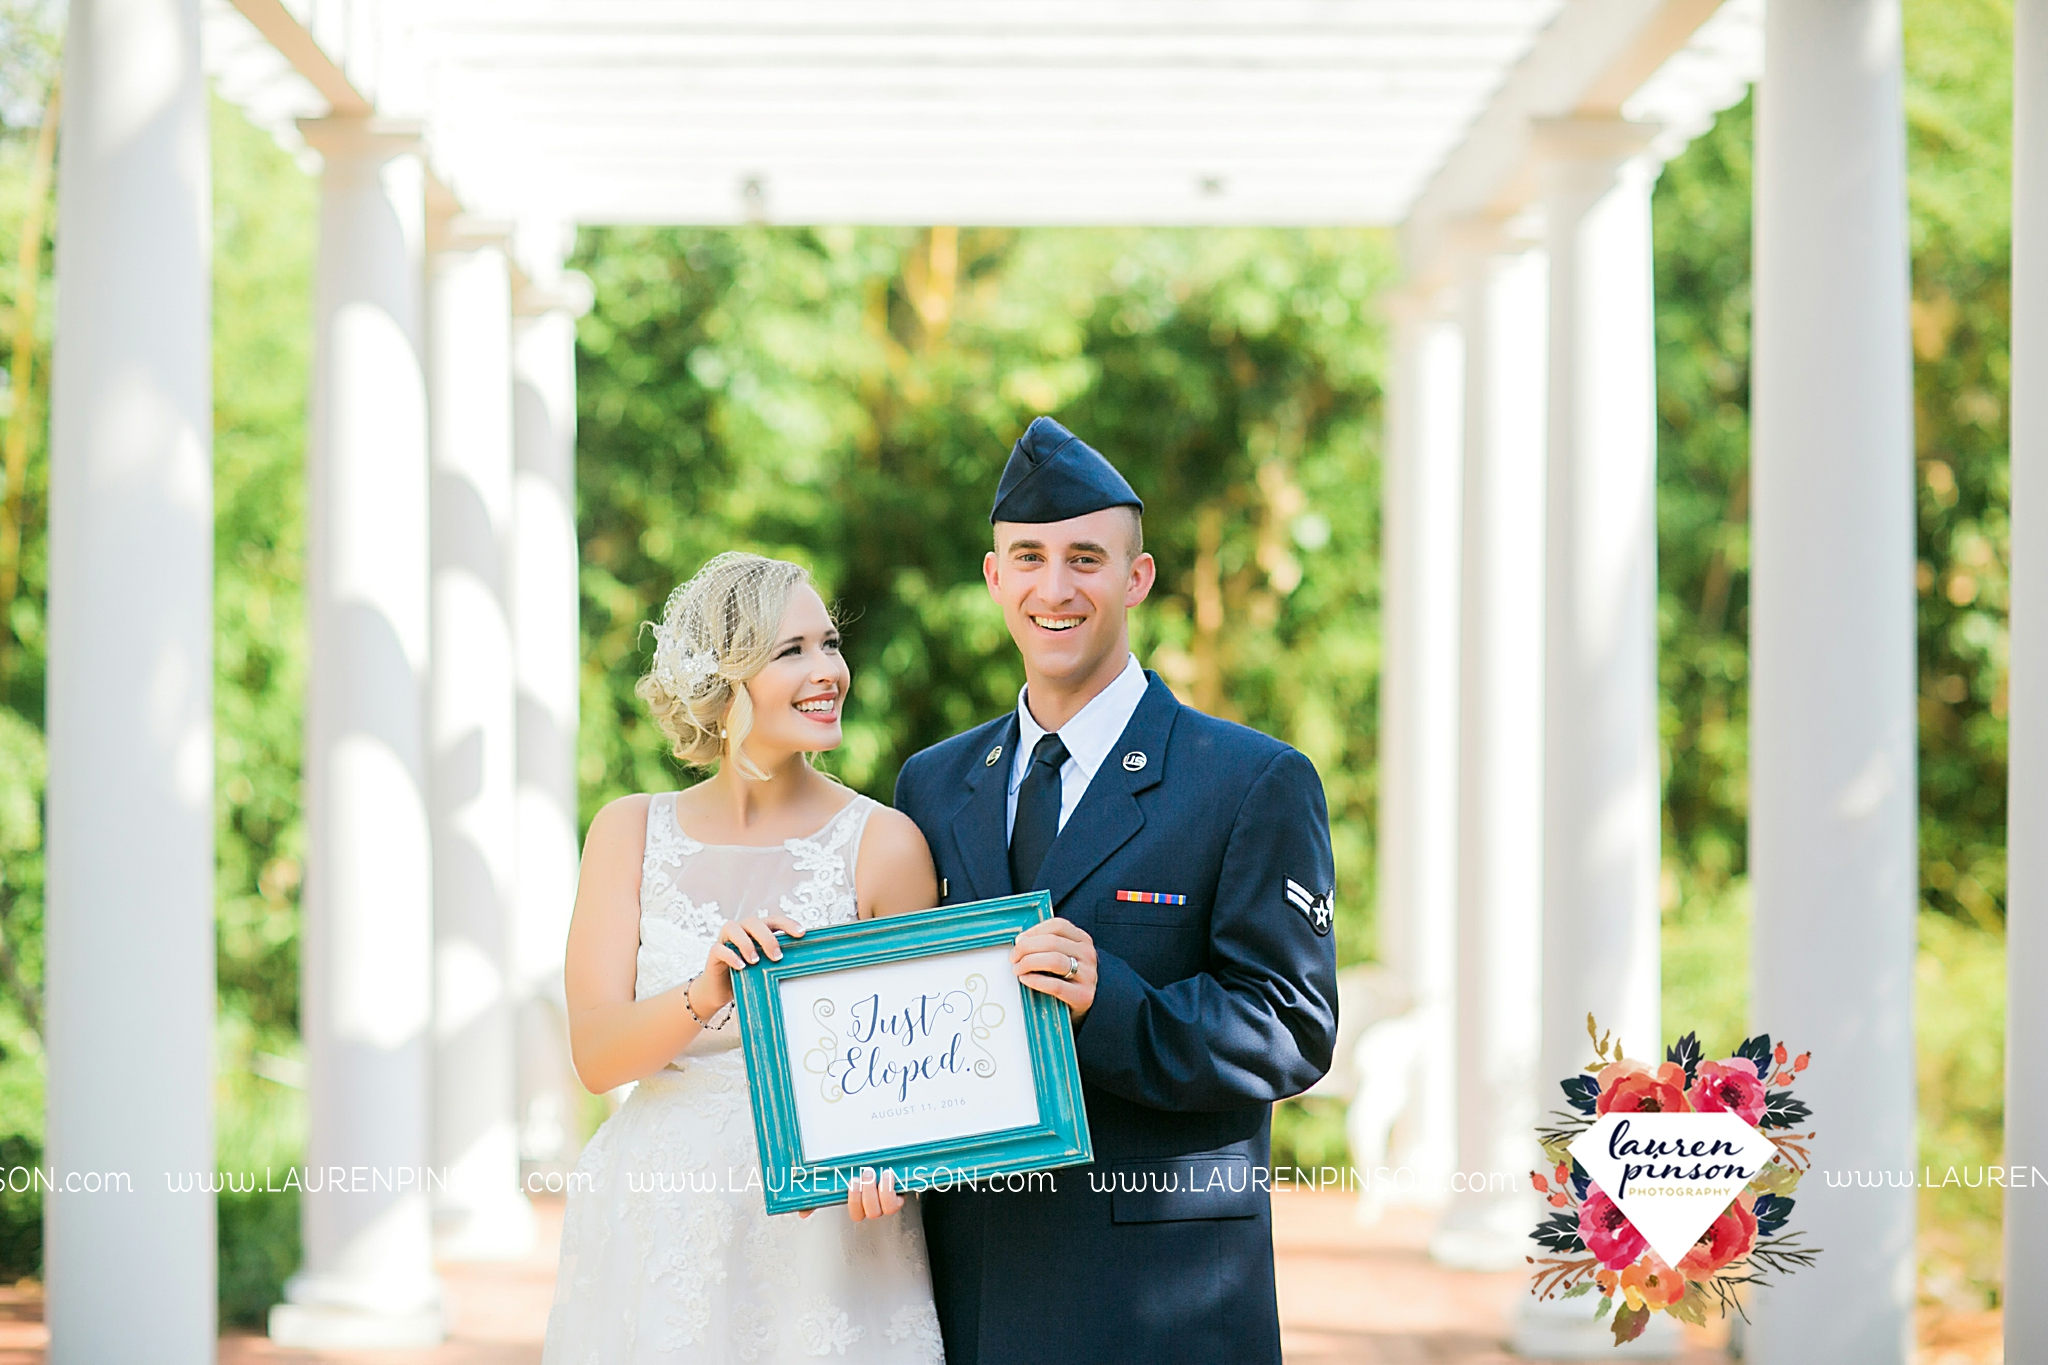 sheppard-afb-wichita-falls-texas-elopement-courthouse-wedding-photographer-justice-of-the-peace-judge-little-ceremony_3287.jpg